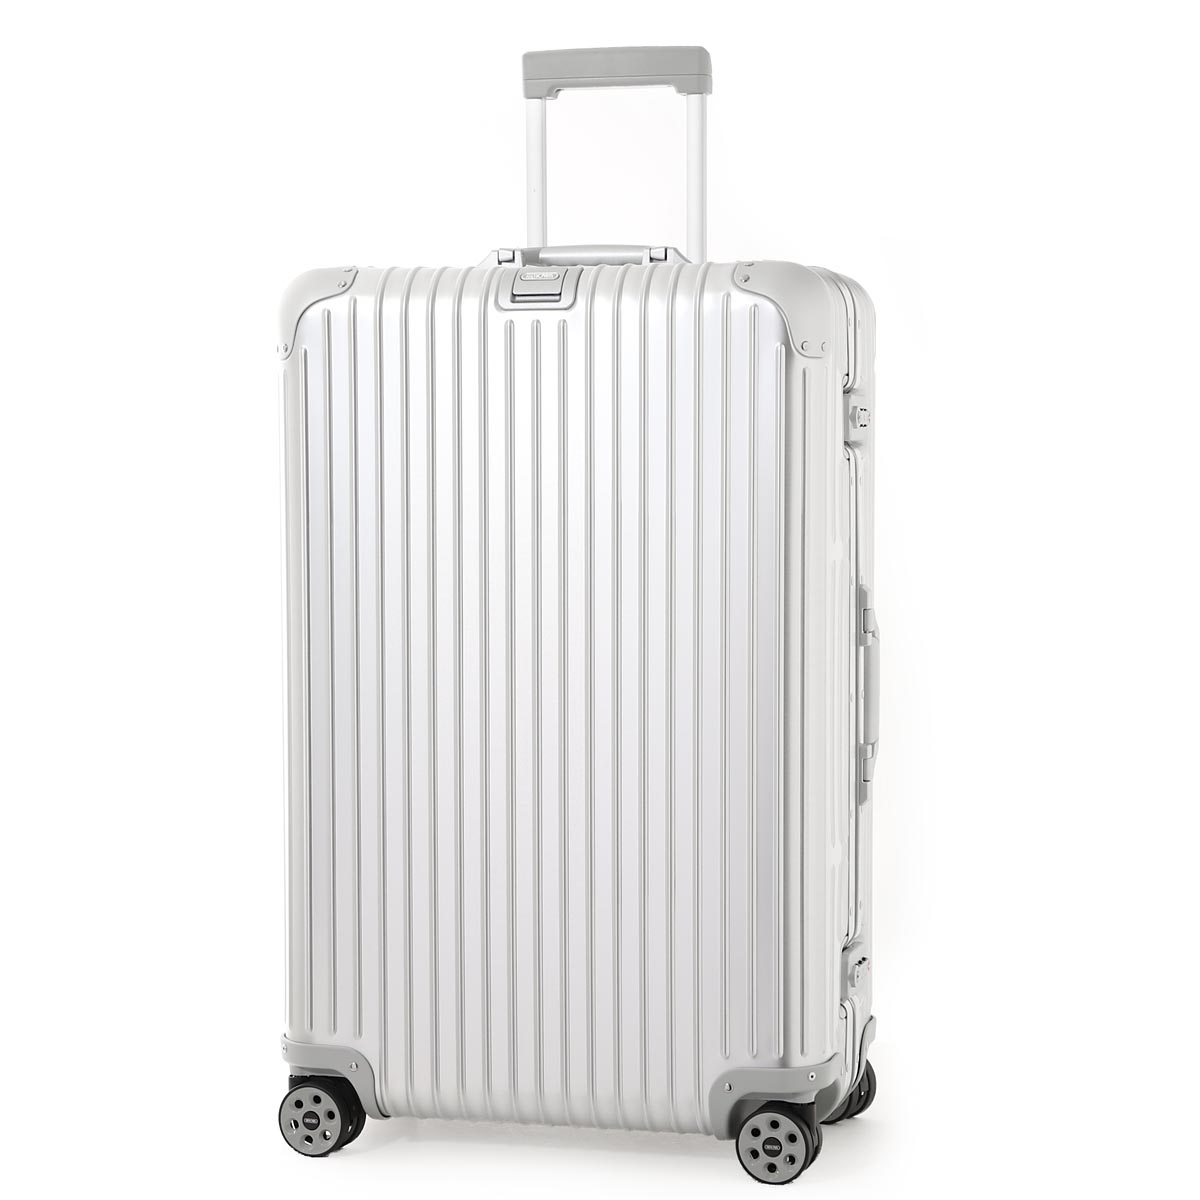 modern blue rakuten ichiba shop rakuten global market rimowa rimowa carry case trolley case. Black Bedroom Furniture Sets. Home Design Ideas